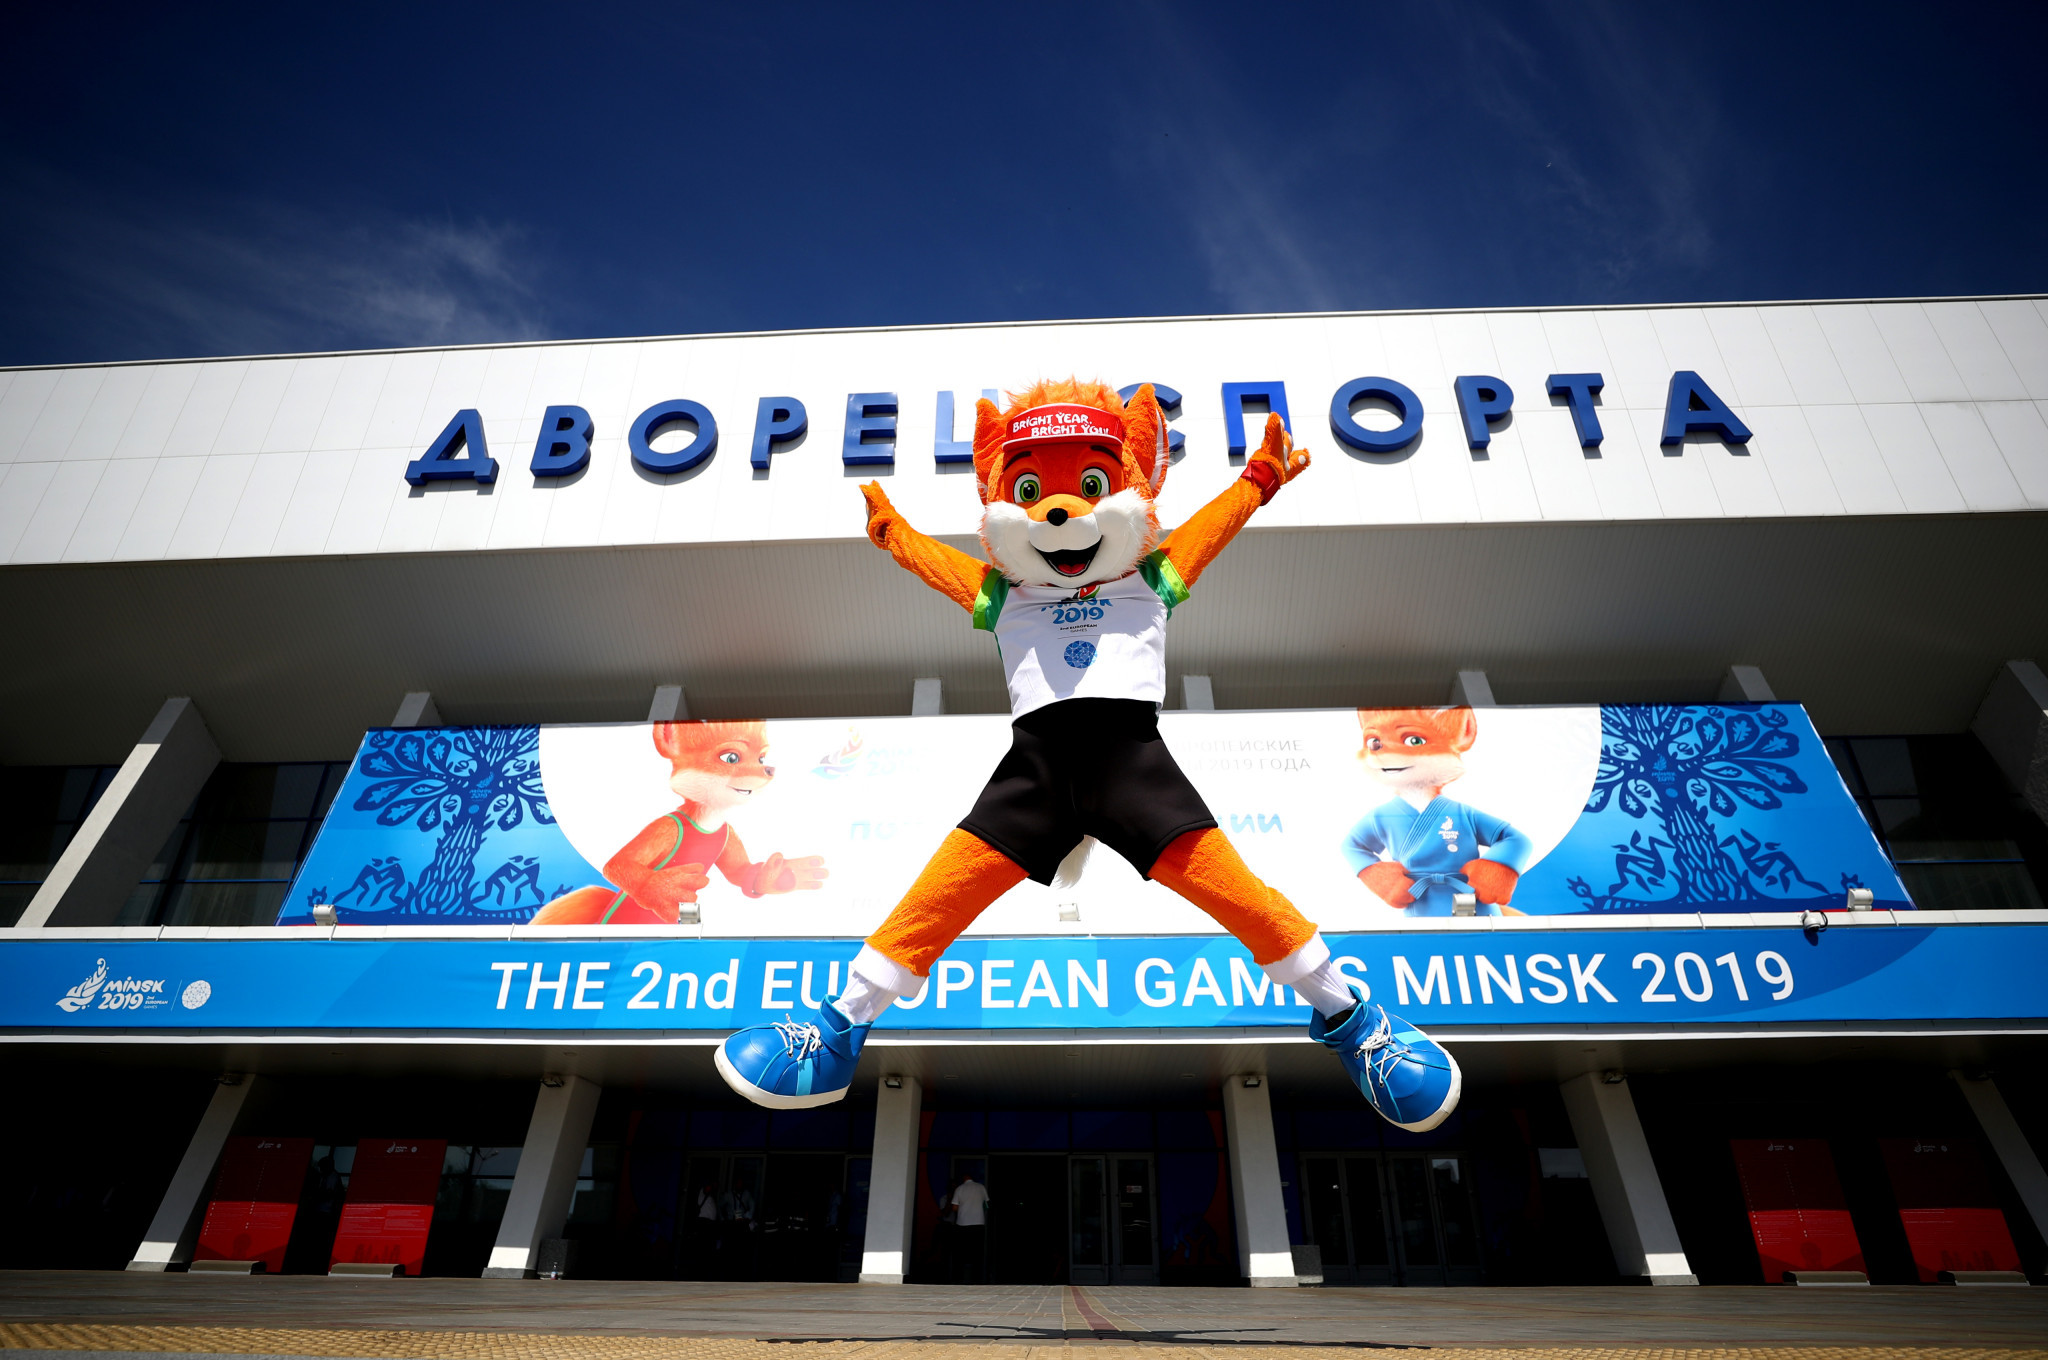 The Minsk 2019 European Games were deemed a success but did not create enough revenue to outweigh the costs ©Getty Images